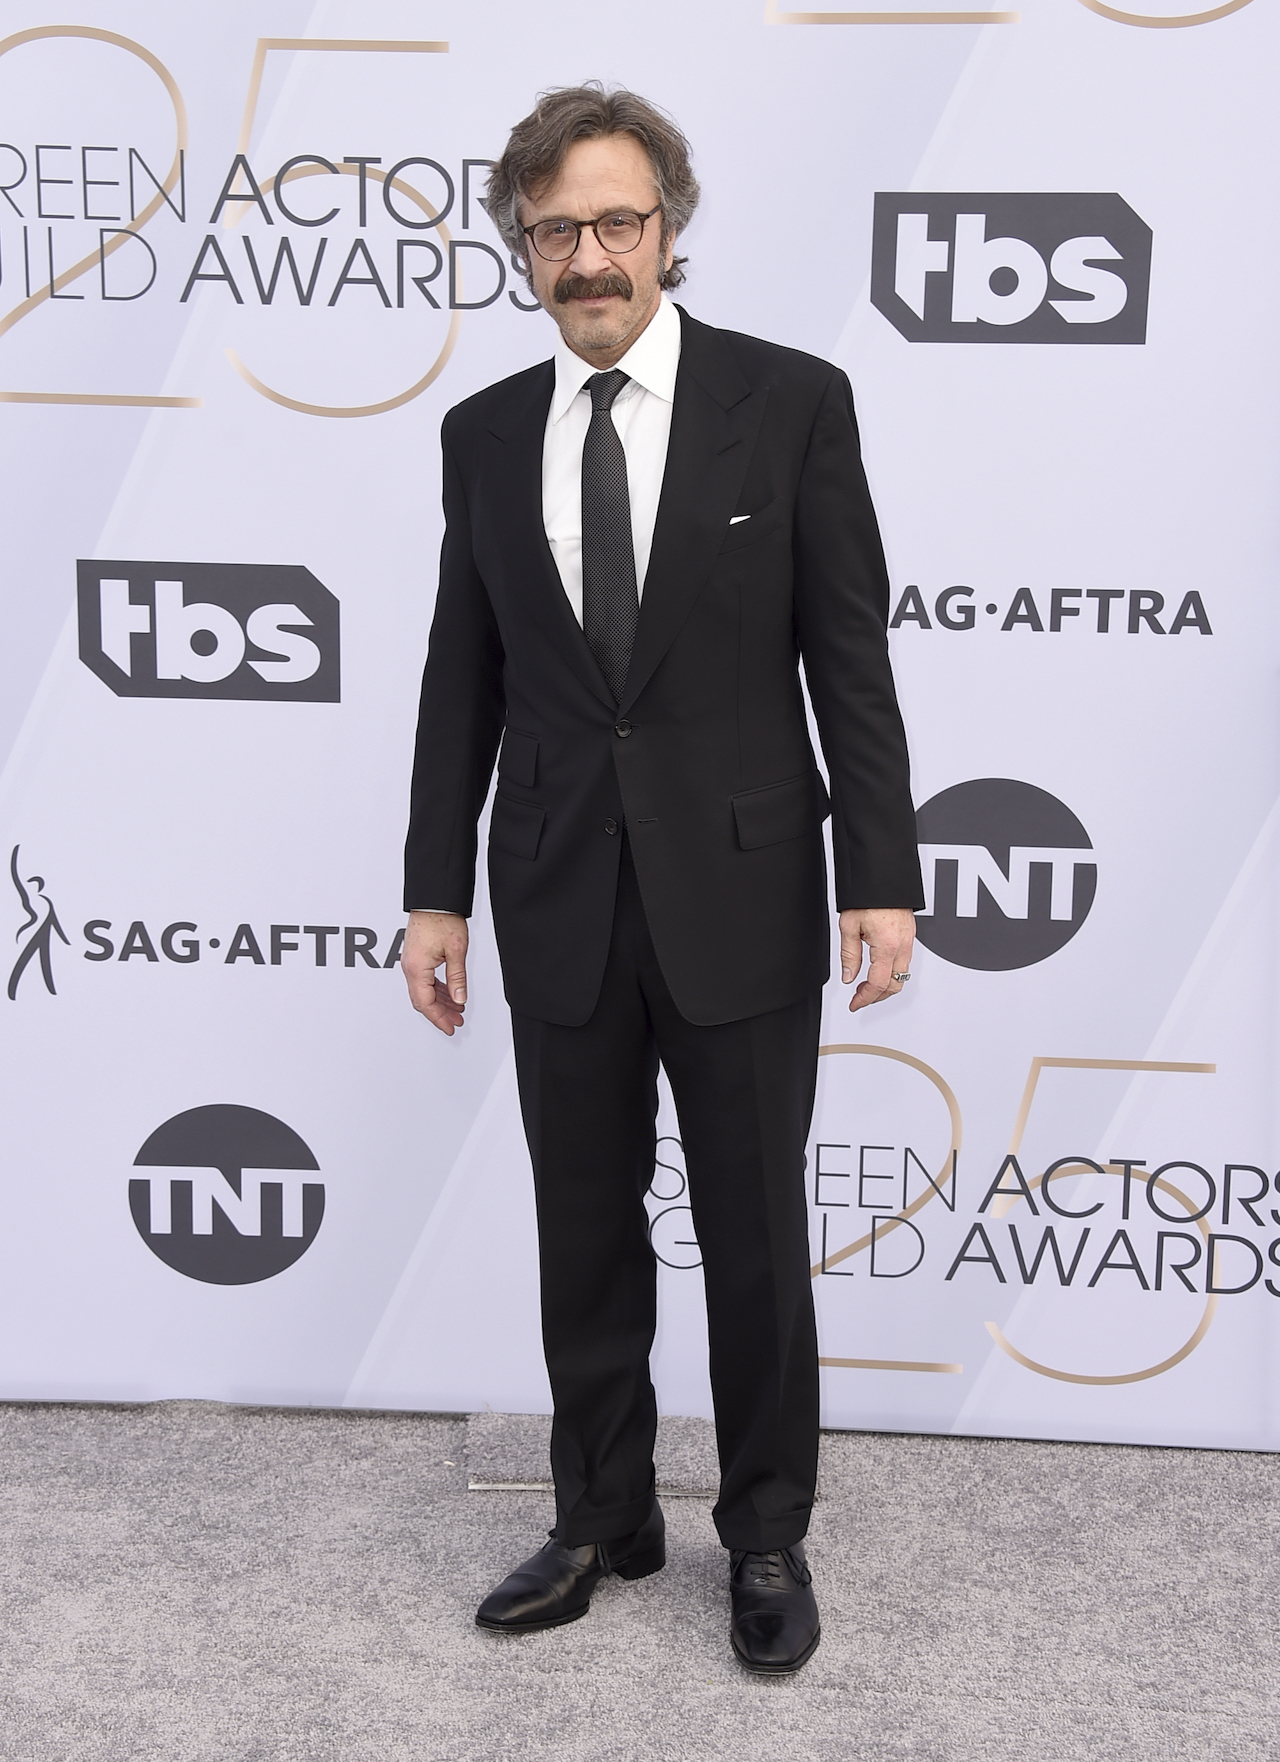 <div class='meta'><div class='origin-logo' data-origin='AP'></div><span class='caption-text' data-credit='Jordan Strauss/Invision/AP'>Marc Maron arrives at the 25th annual Screen Actors Guild Awards at the Shrine Auditorium & Expo Hall on Sunday, Jan. 27, 2019, in Los Angeles.</span></div>